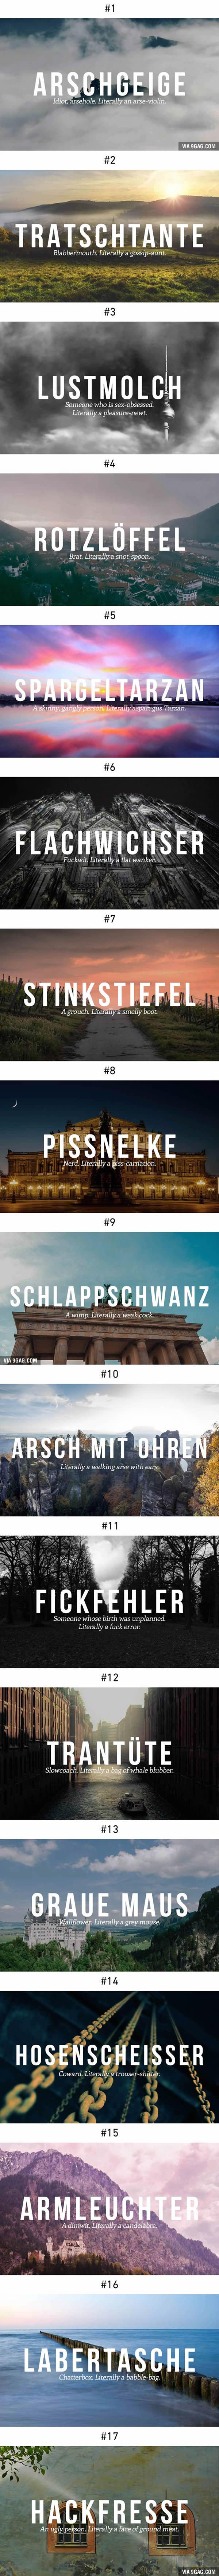 Brilliant German Insults We Need In English - http://www.funnyclone.com/brilliant-german-insults-we-need-in-english/